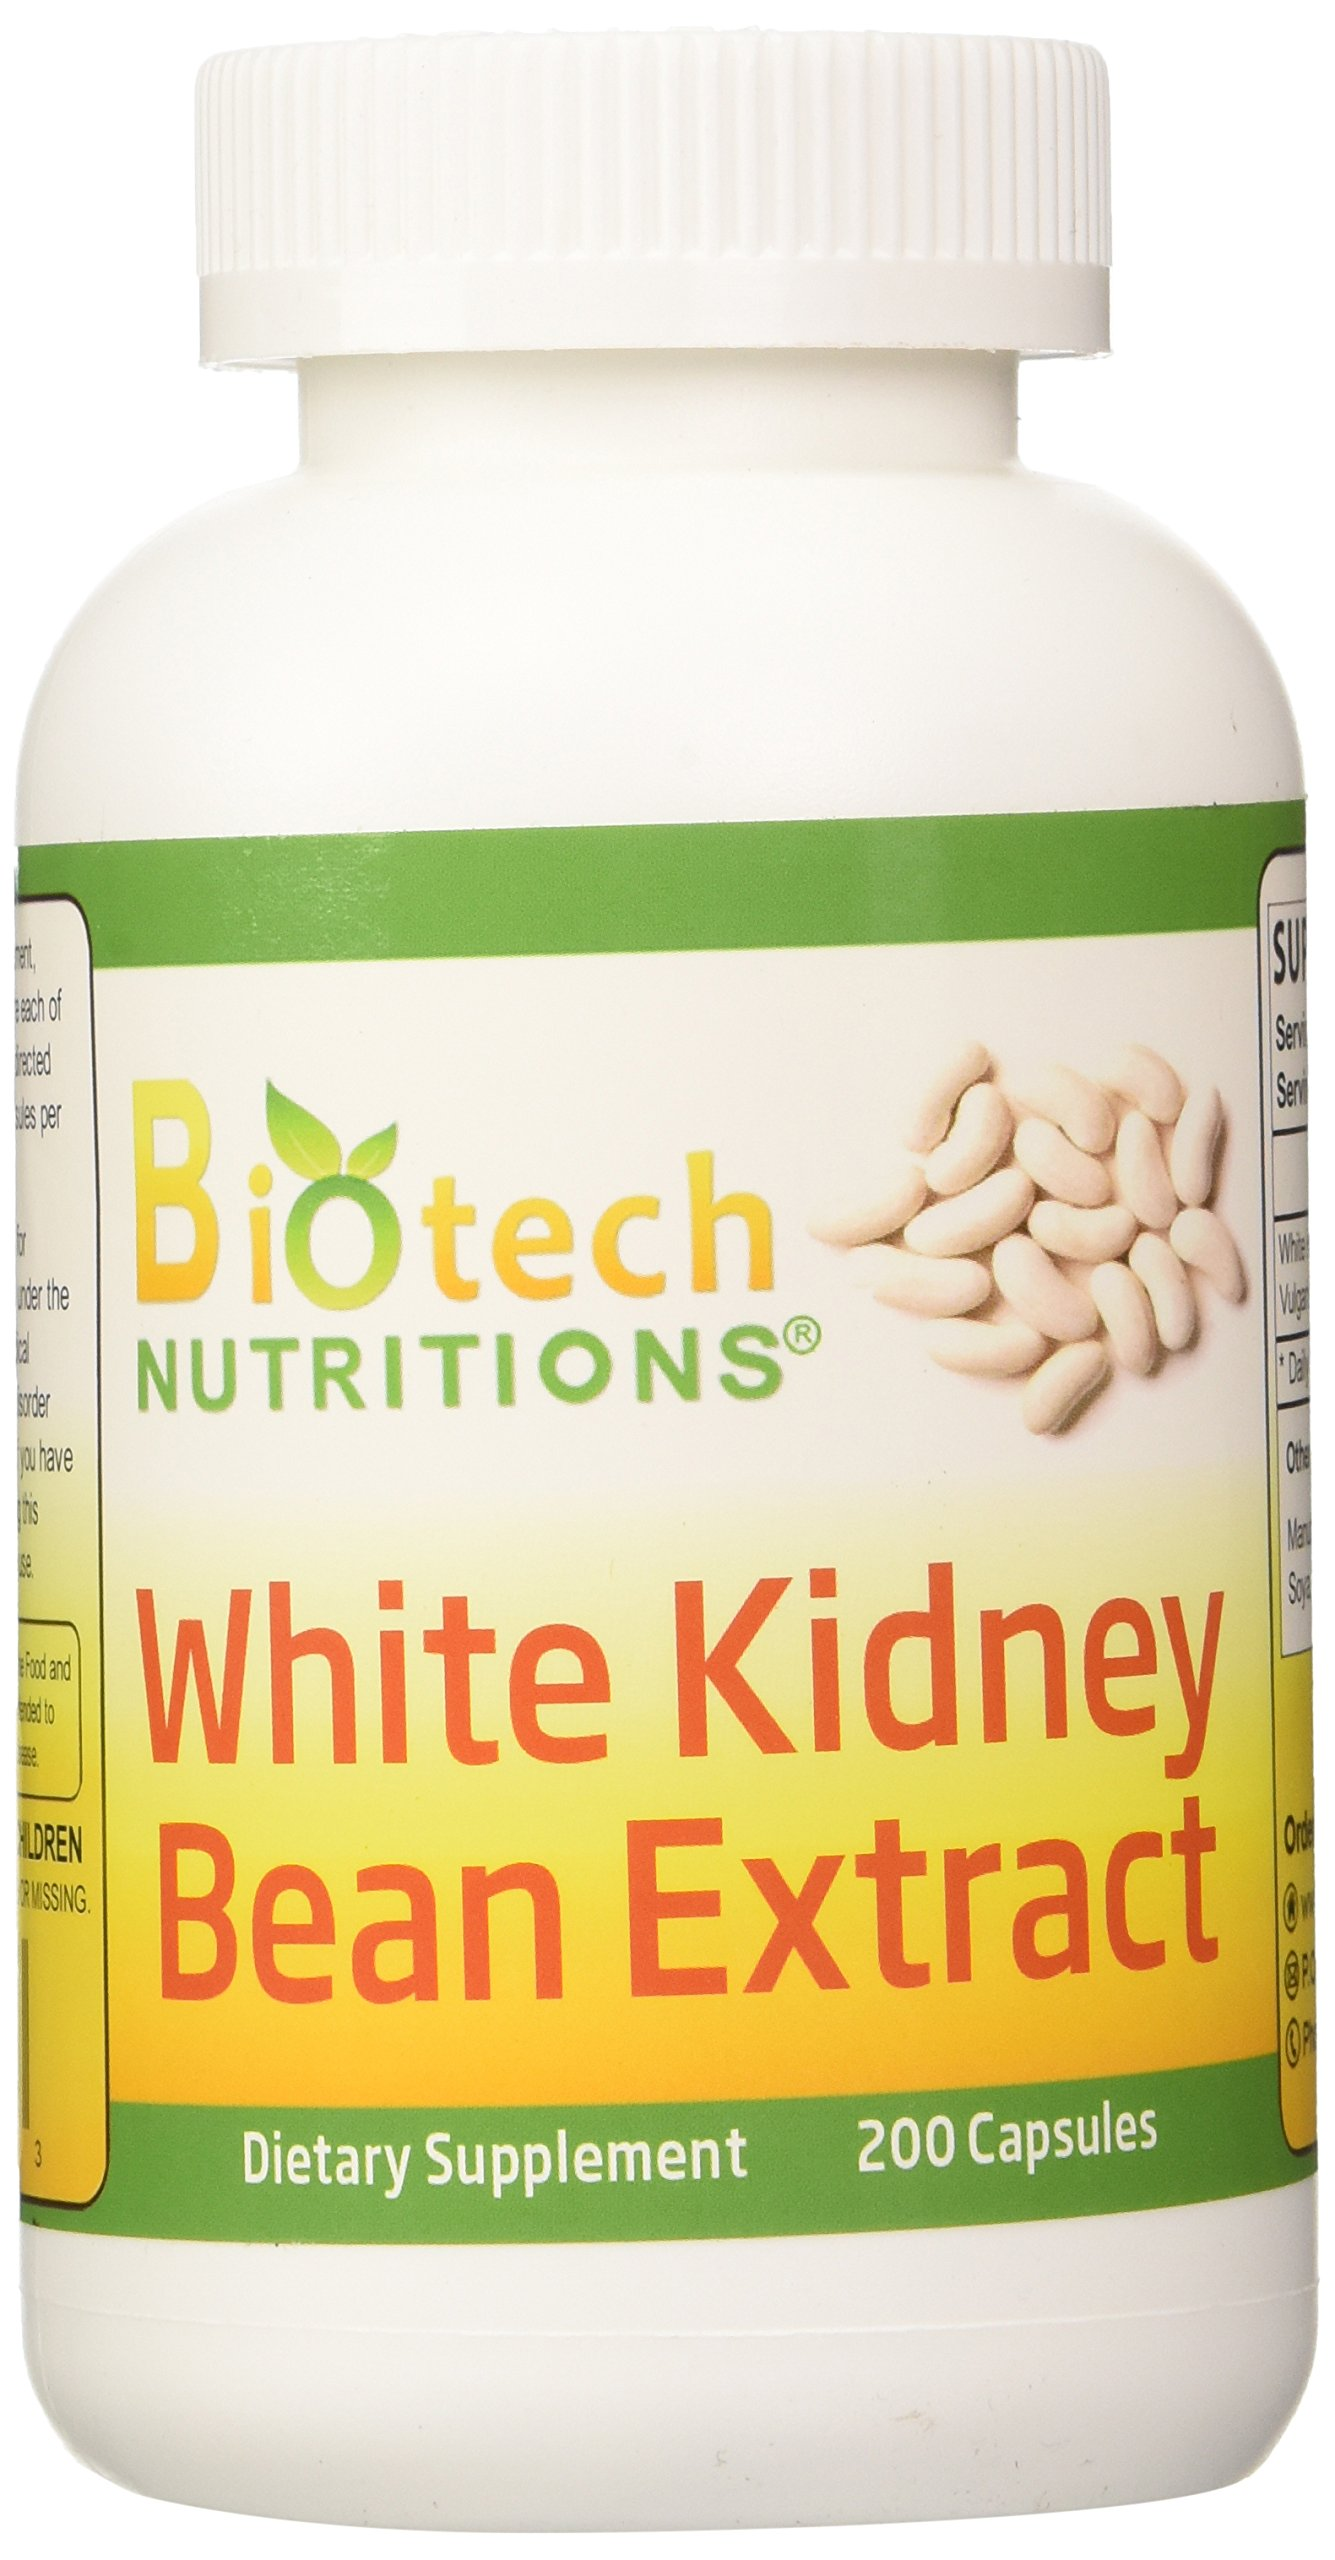 Biotech Nutritions White Kidney Bean Extract, 200 Count by Biotech Nutritions